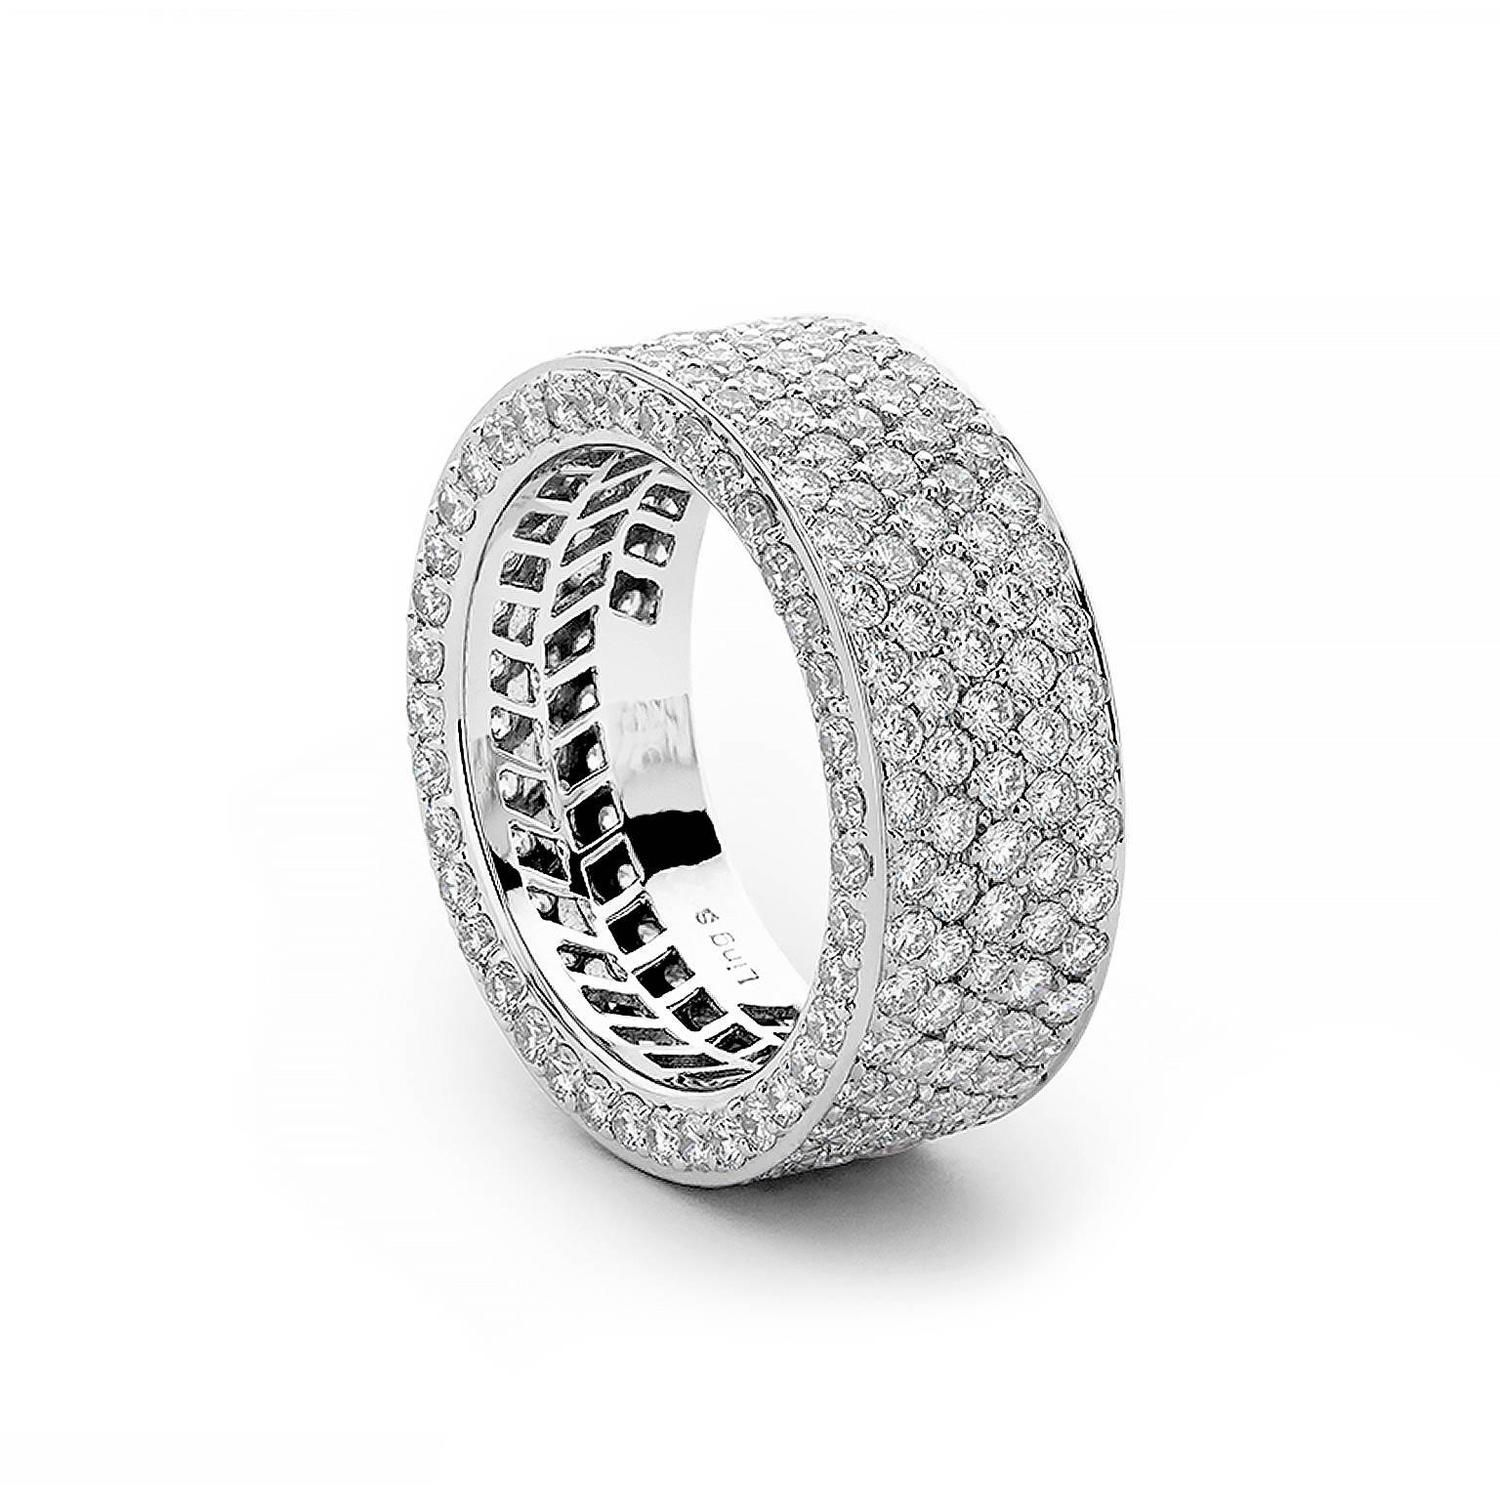 bands ring amazon cz rhodium dp micro eternity plated wide com band white jewelry diamond pave silver